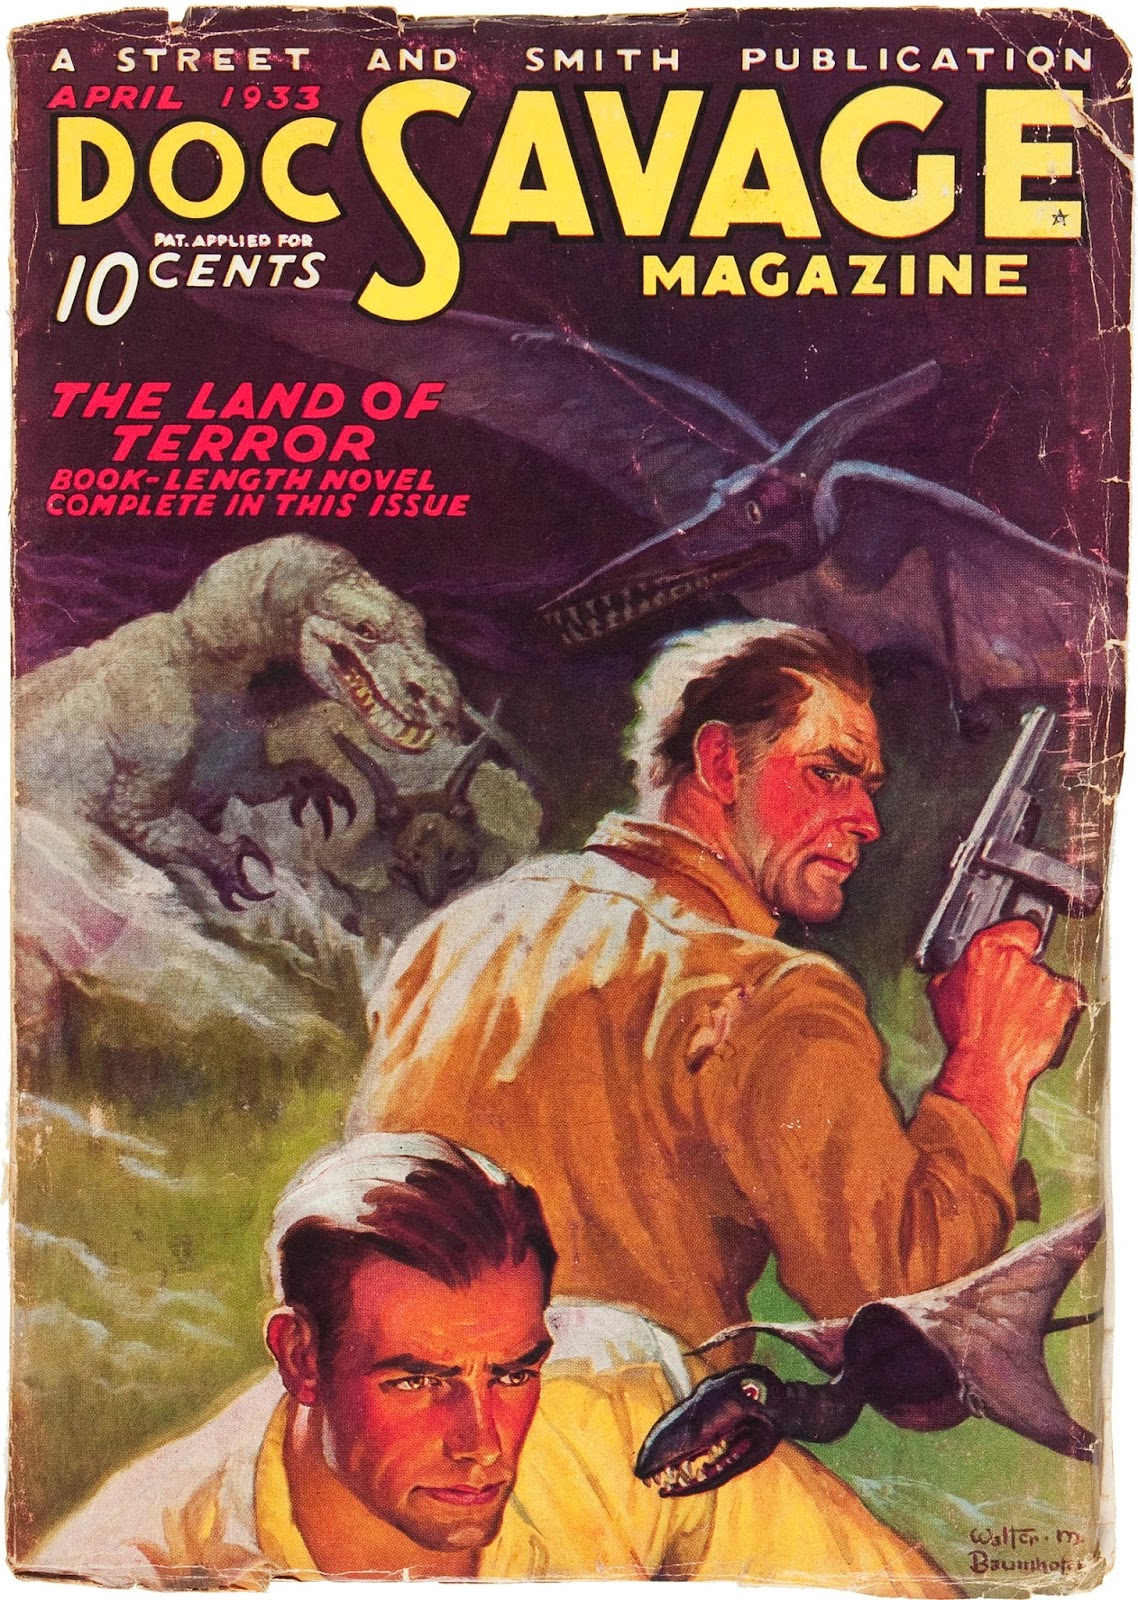 http://pulpcovers.com/the-land-of-terror/#1